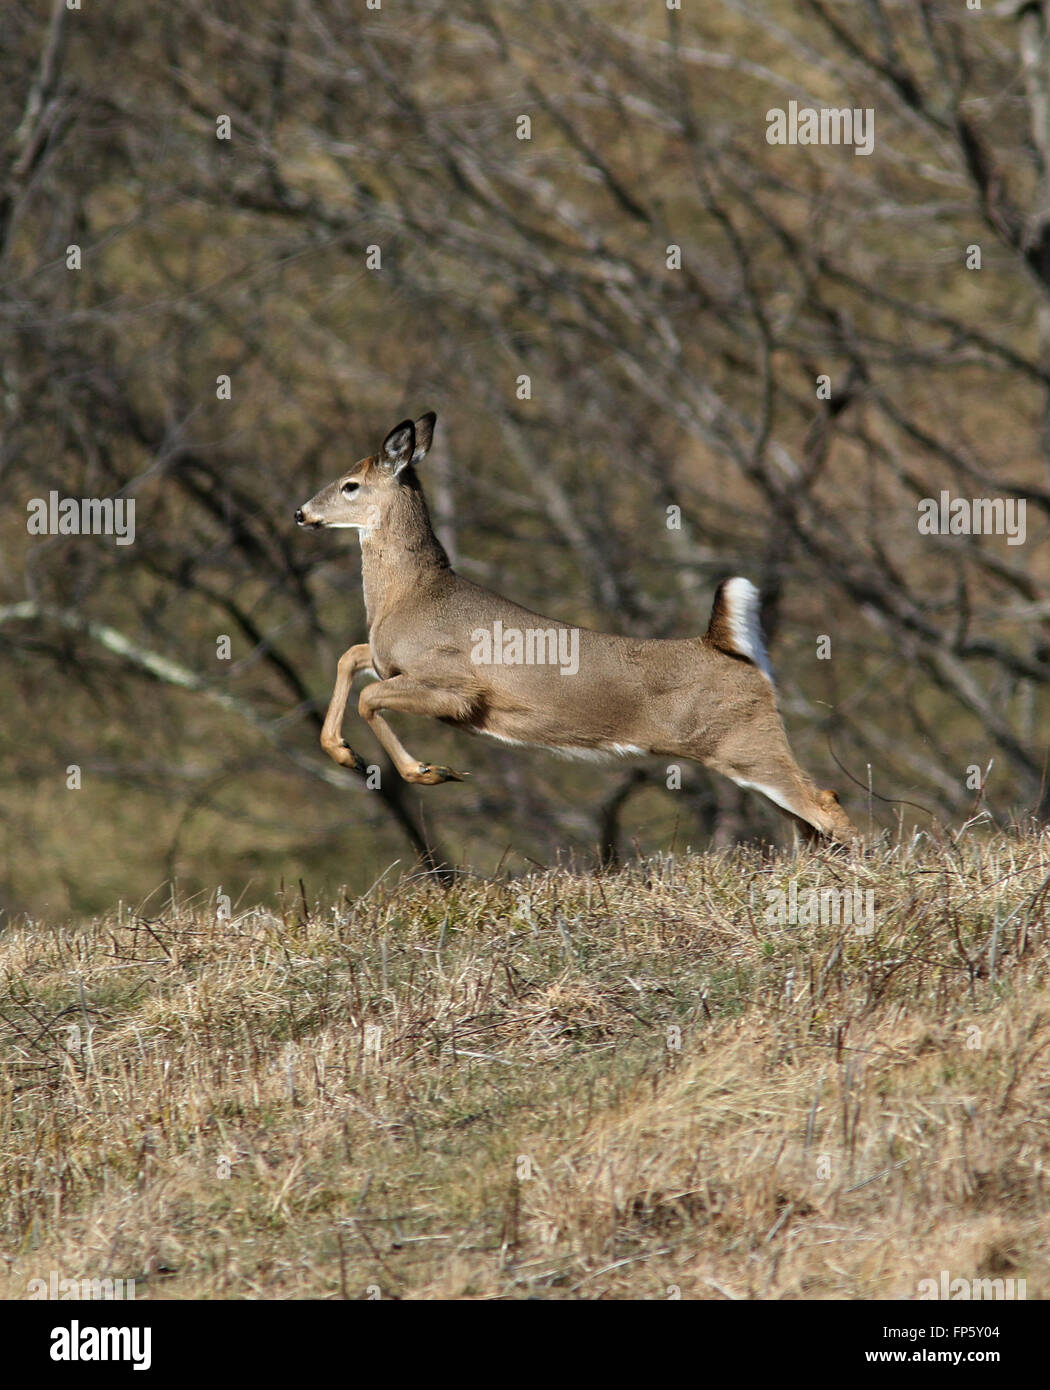 White tailed deer running through field Kentucky Stock Photo